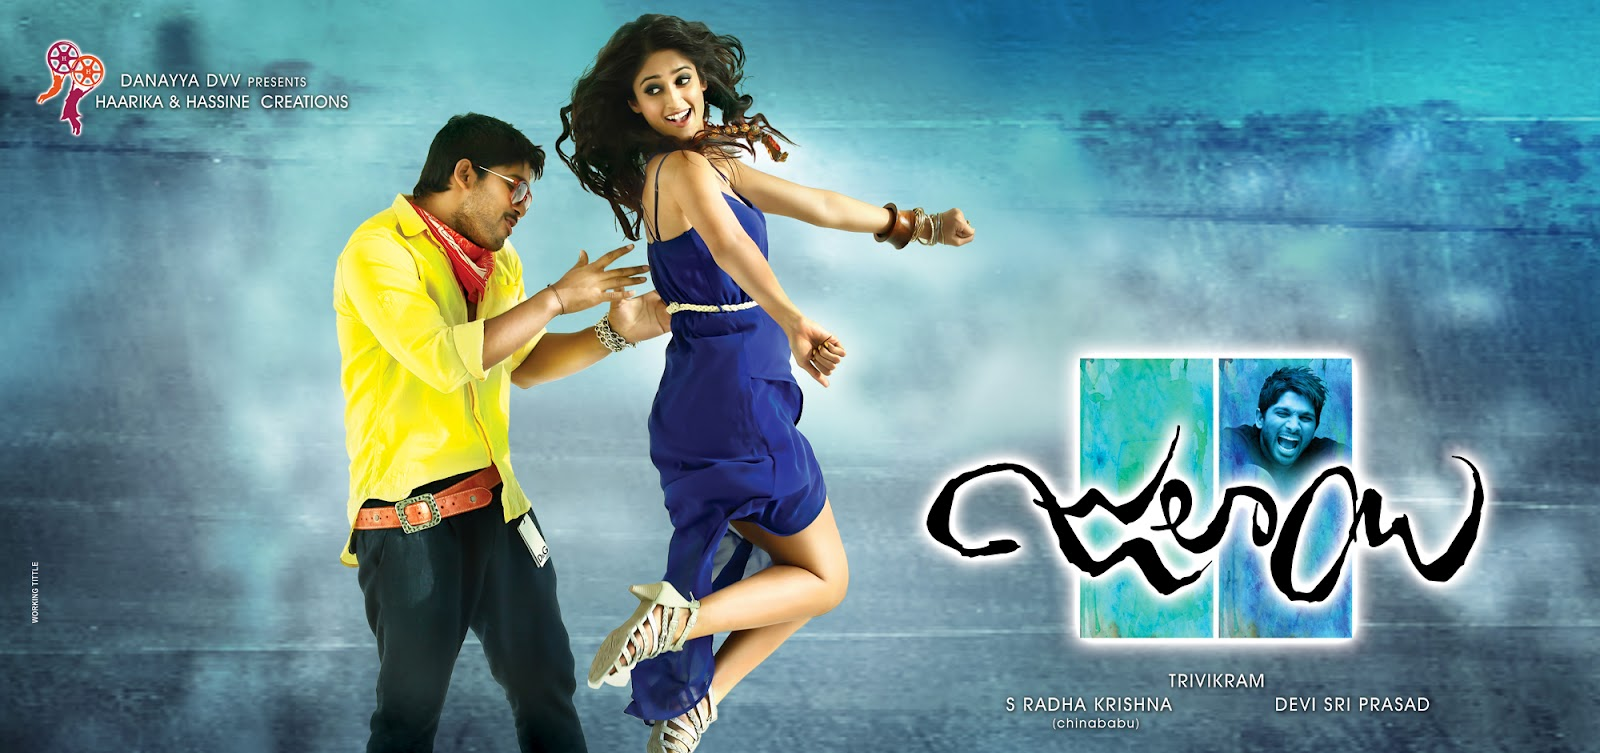 Lyricsintelugu Telugu Songs Lyrics Julayi Songs Osey Osey Song Lyrics From Allu Arjun Julayi 2012 Telugu Movie